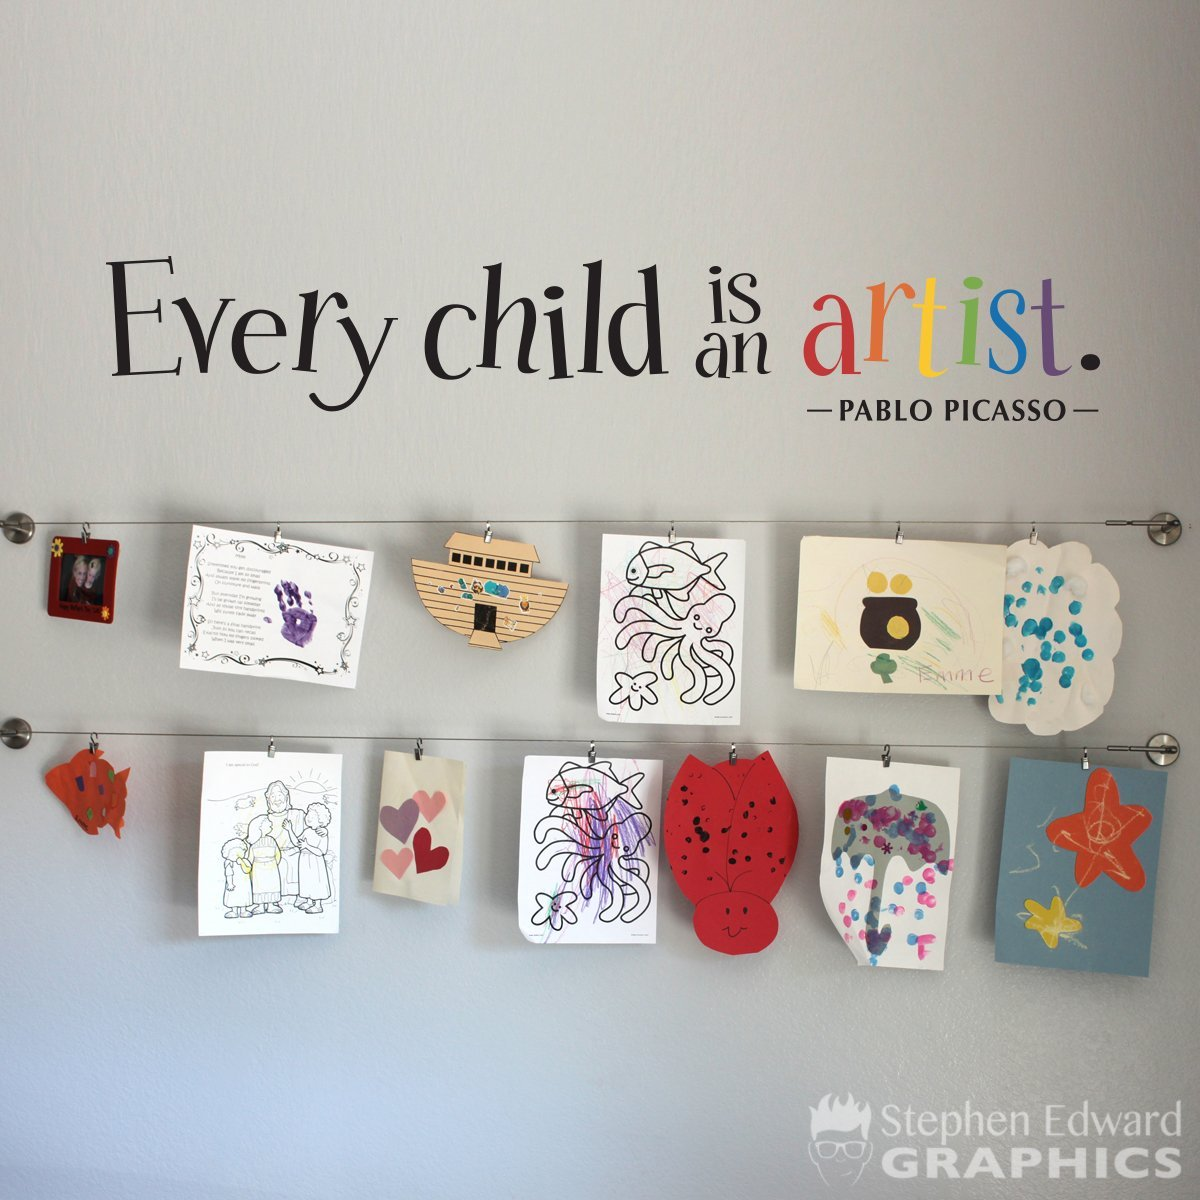 Every Child is an Artist - Artist Rainbow Wall Decal - Children Artwork Display Decal - Picasso Quote (DE0162)